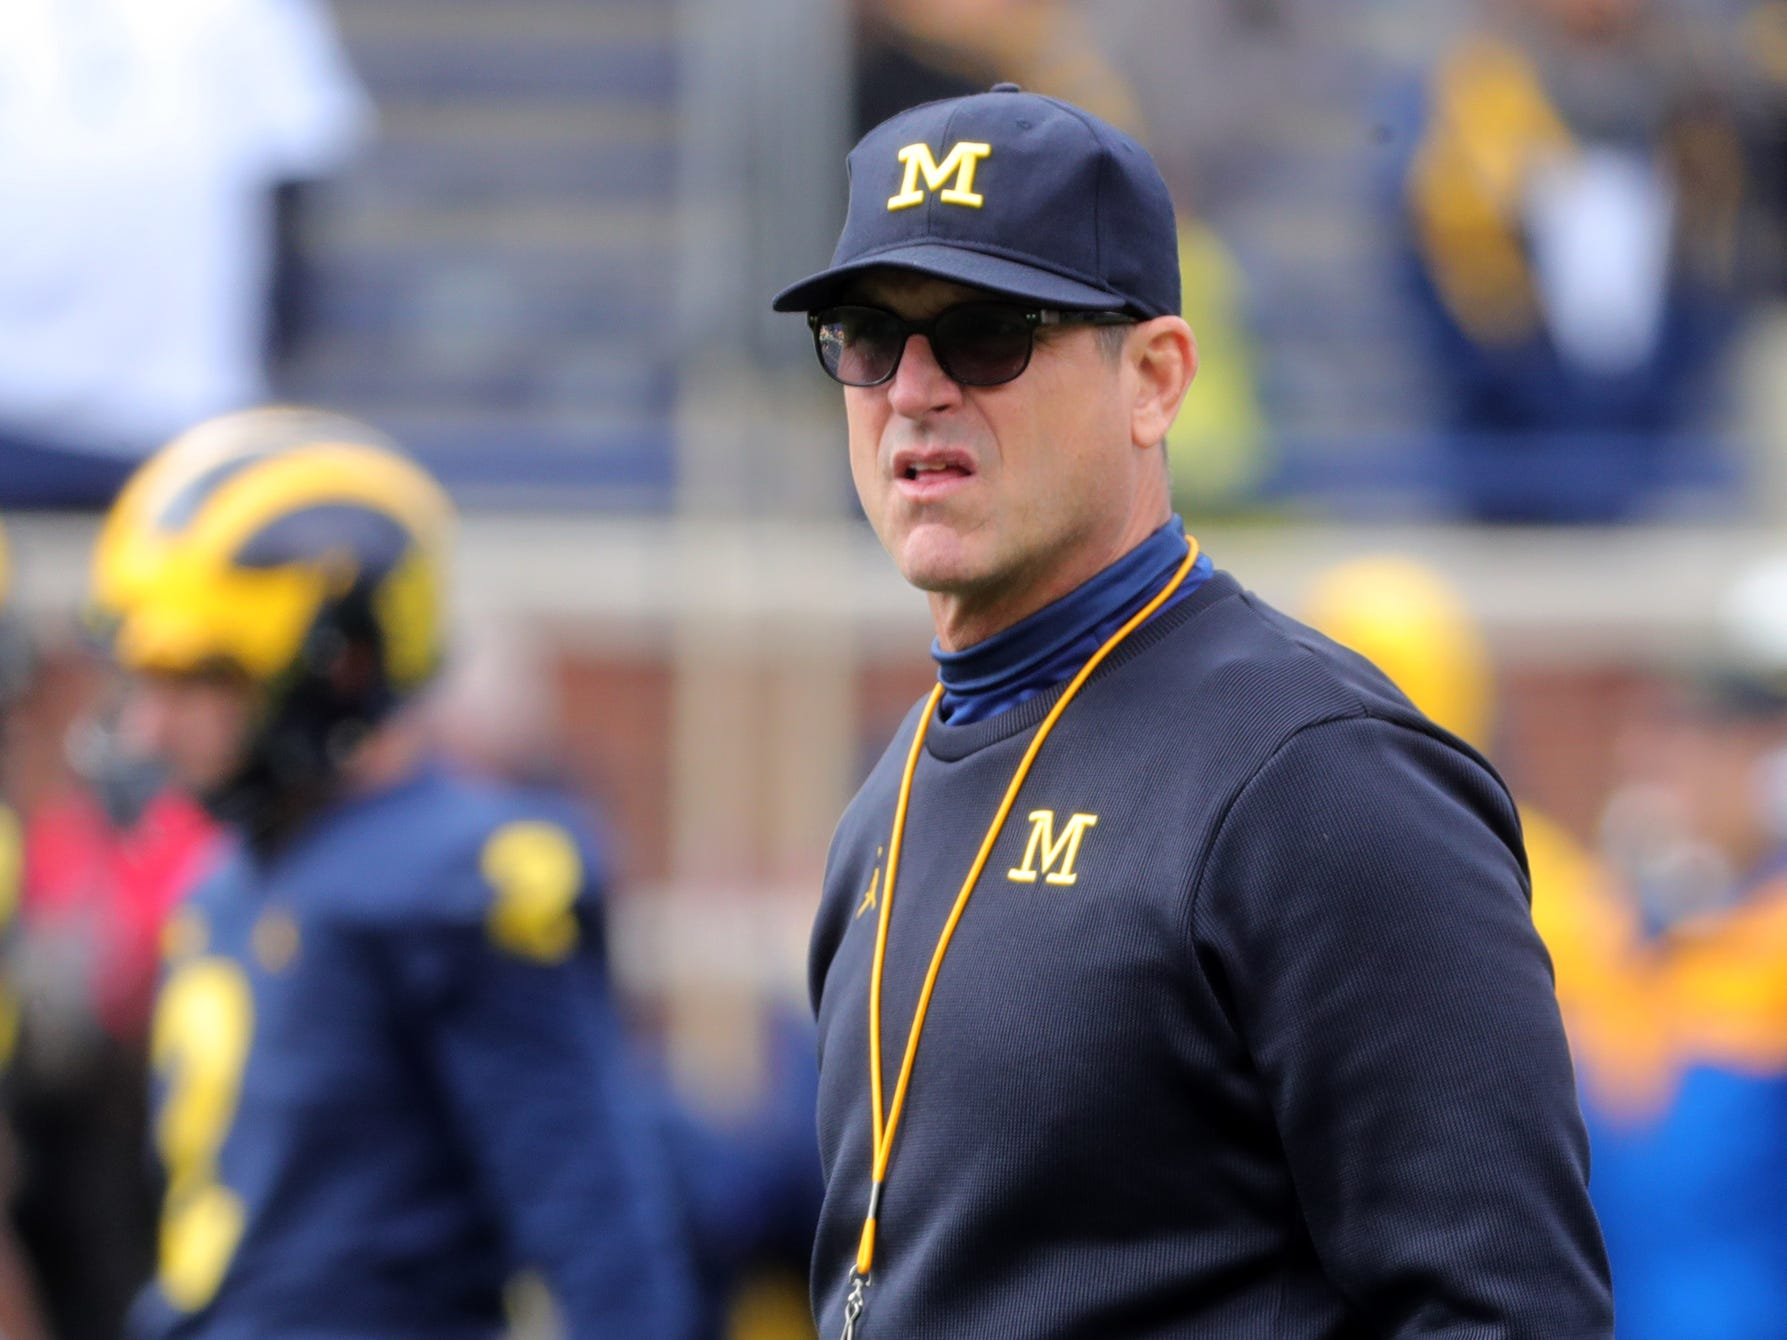 Michigan coach Jim Harbaugh watches his team warm up prior to the game against Penn State on Saturday, Nov. 3,2018, at Michigan Stadium.